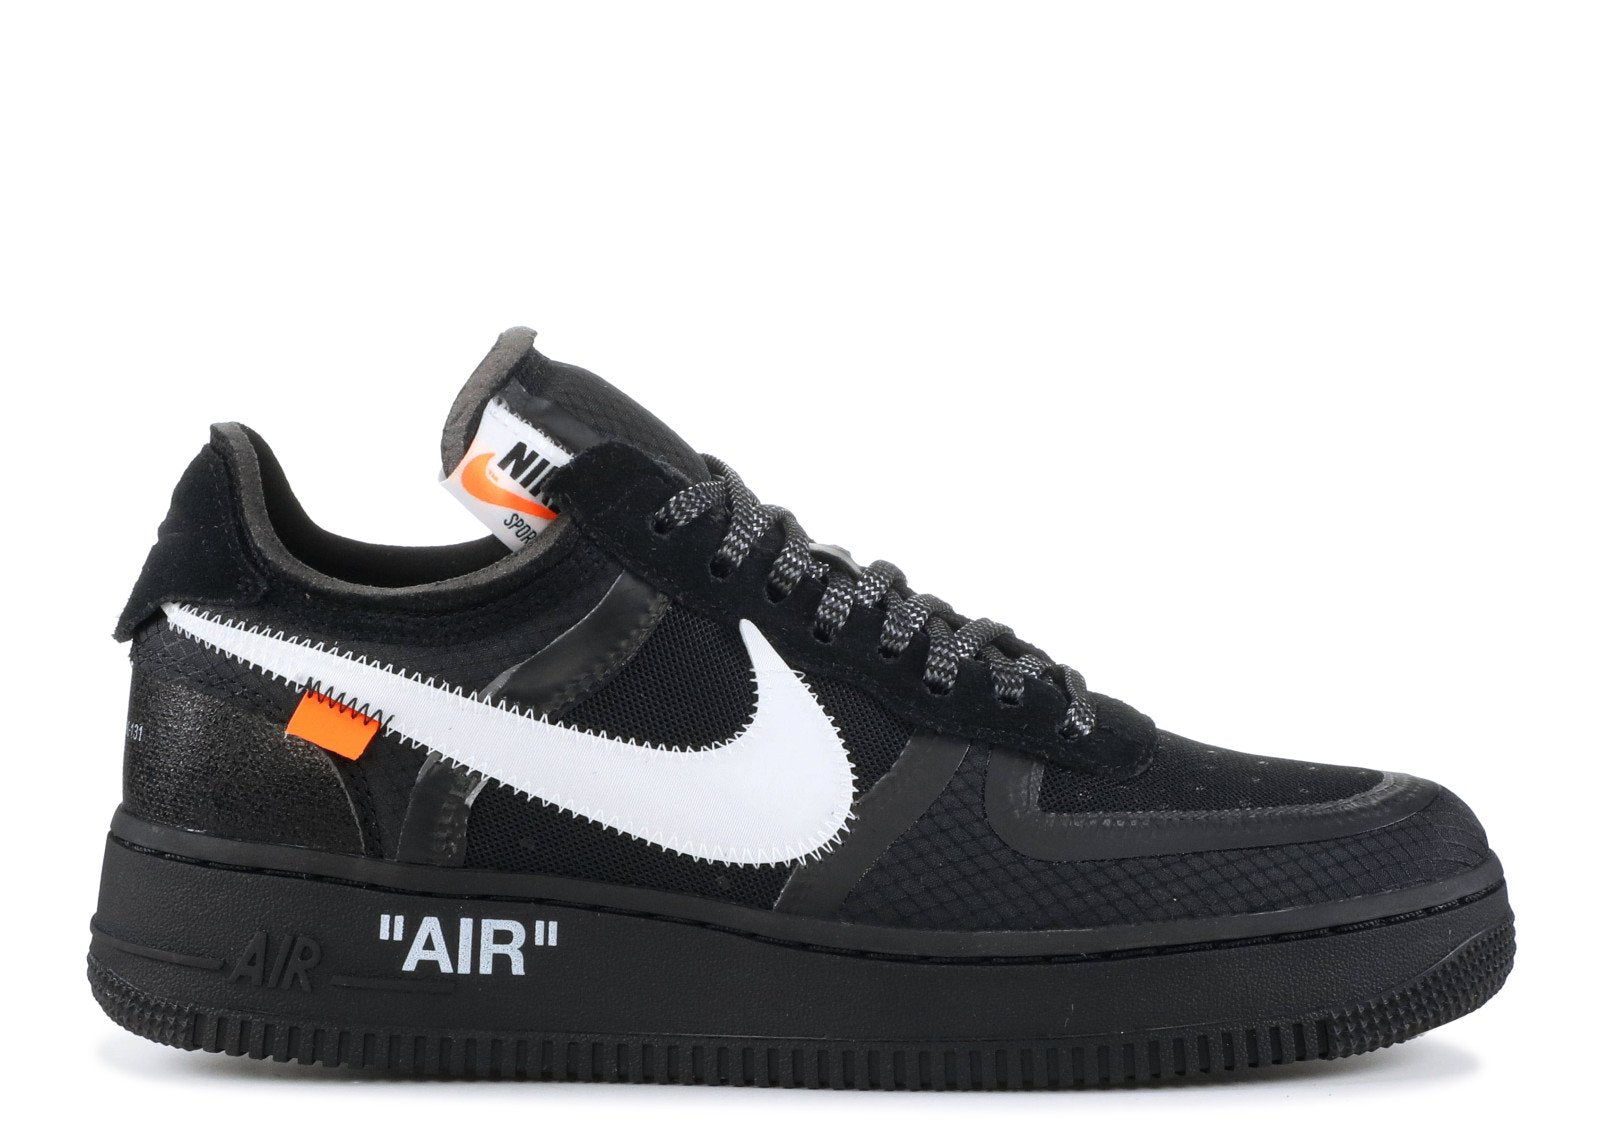 Air Force 1 Low Off-White Black White - CookiesandKicksLA